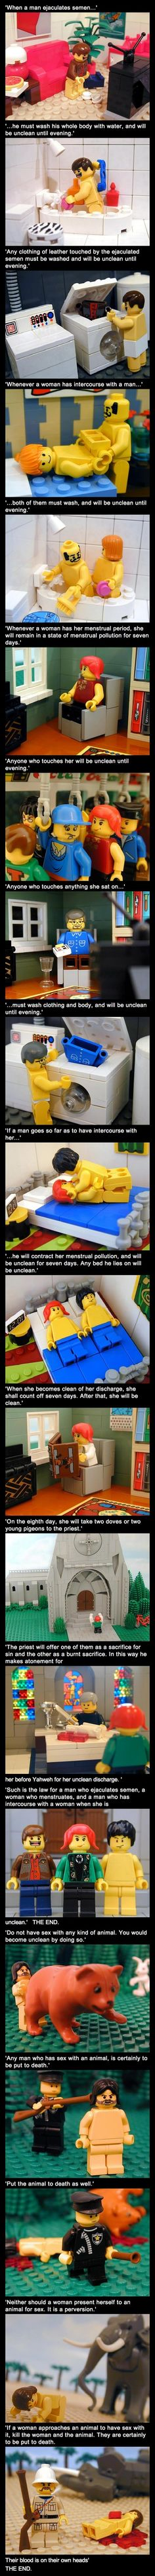 Lego bible verses, I really don't understand why it says to kill the poor animals they were innocent victims!